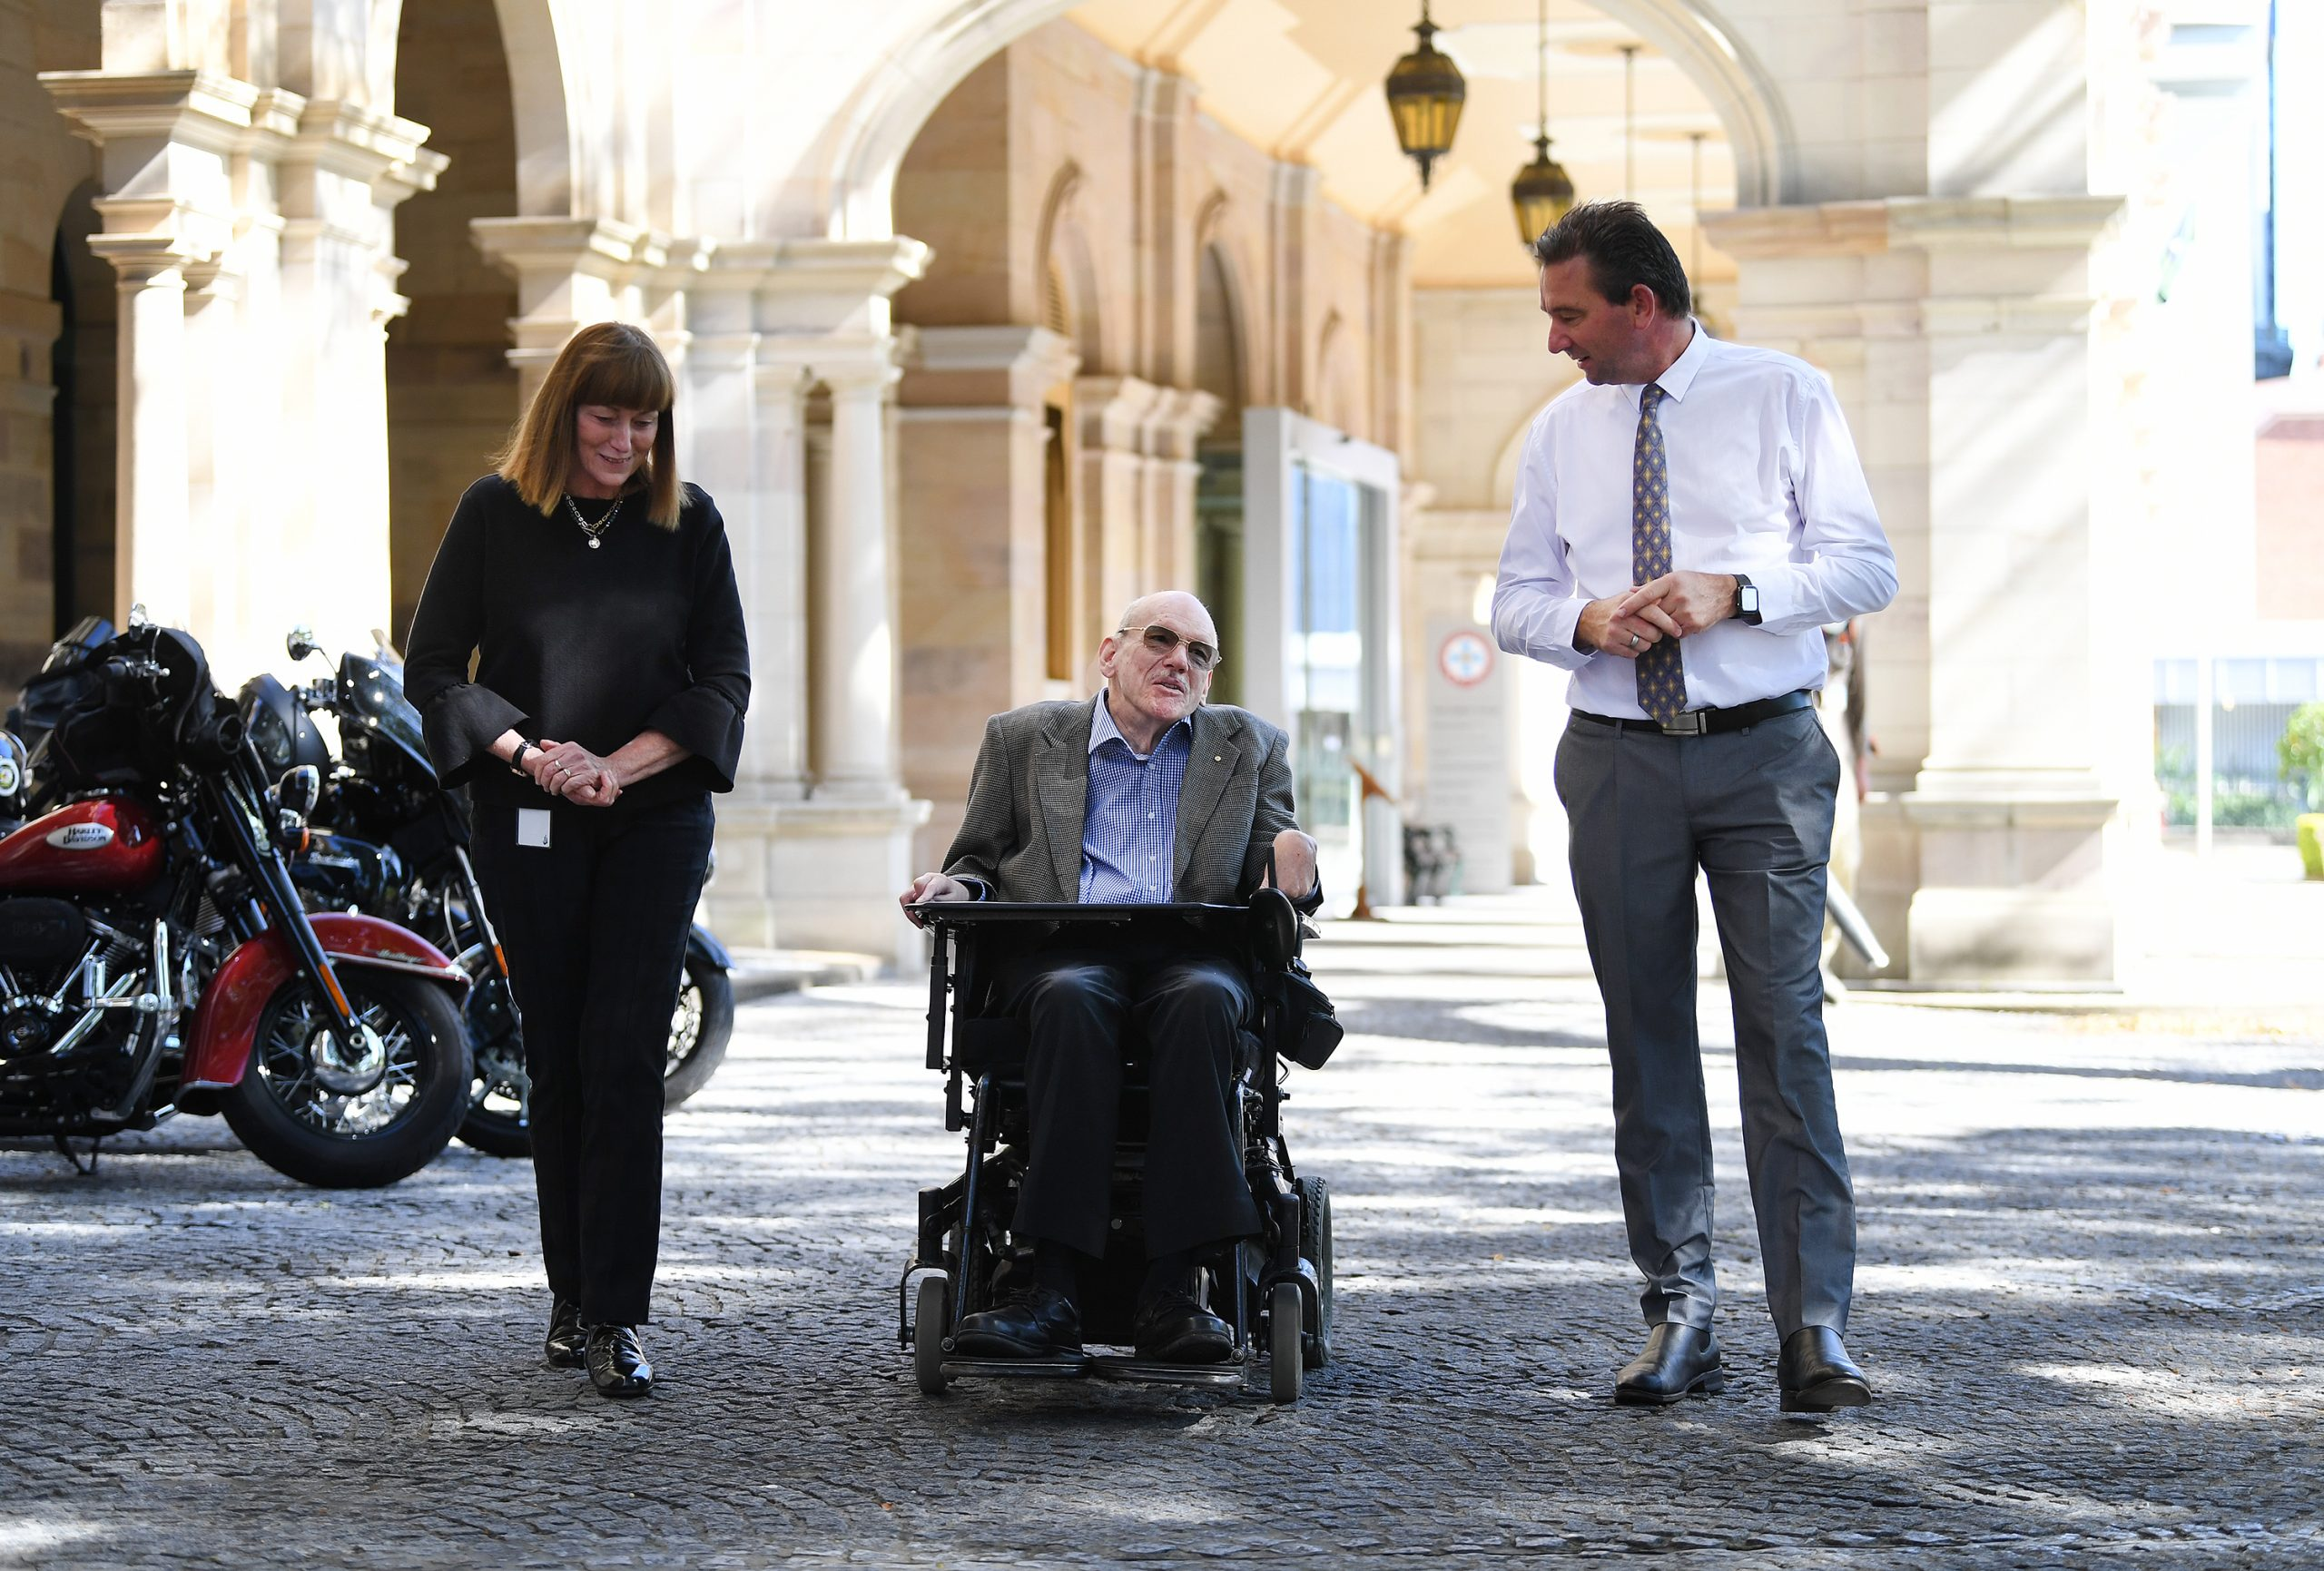 Three people outside walking. There is a lady wearing black, a man in a blazer in a wheelchair and another man on the other side wearing a white shirt and tie.